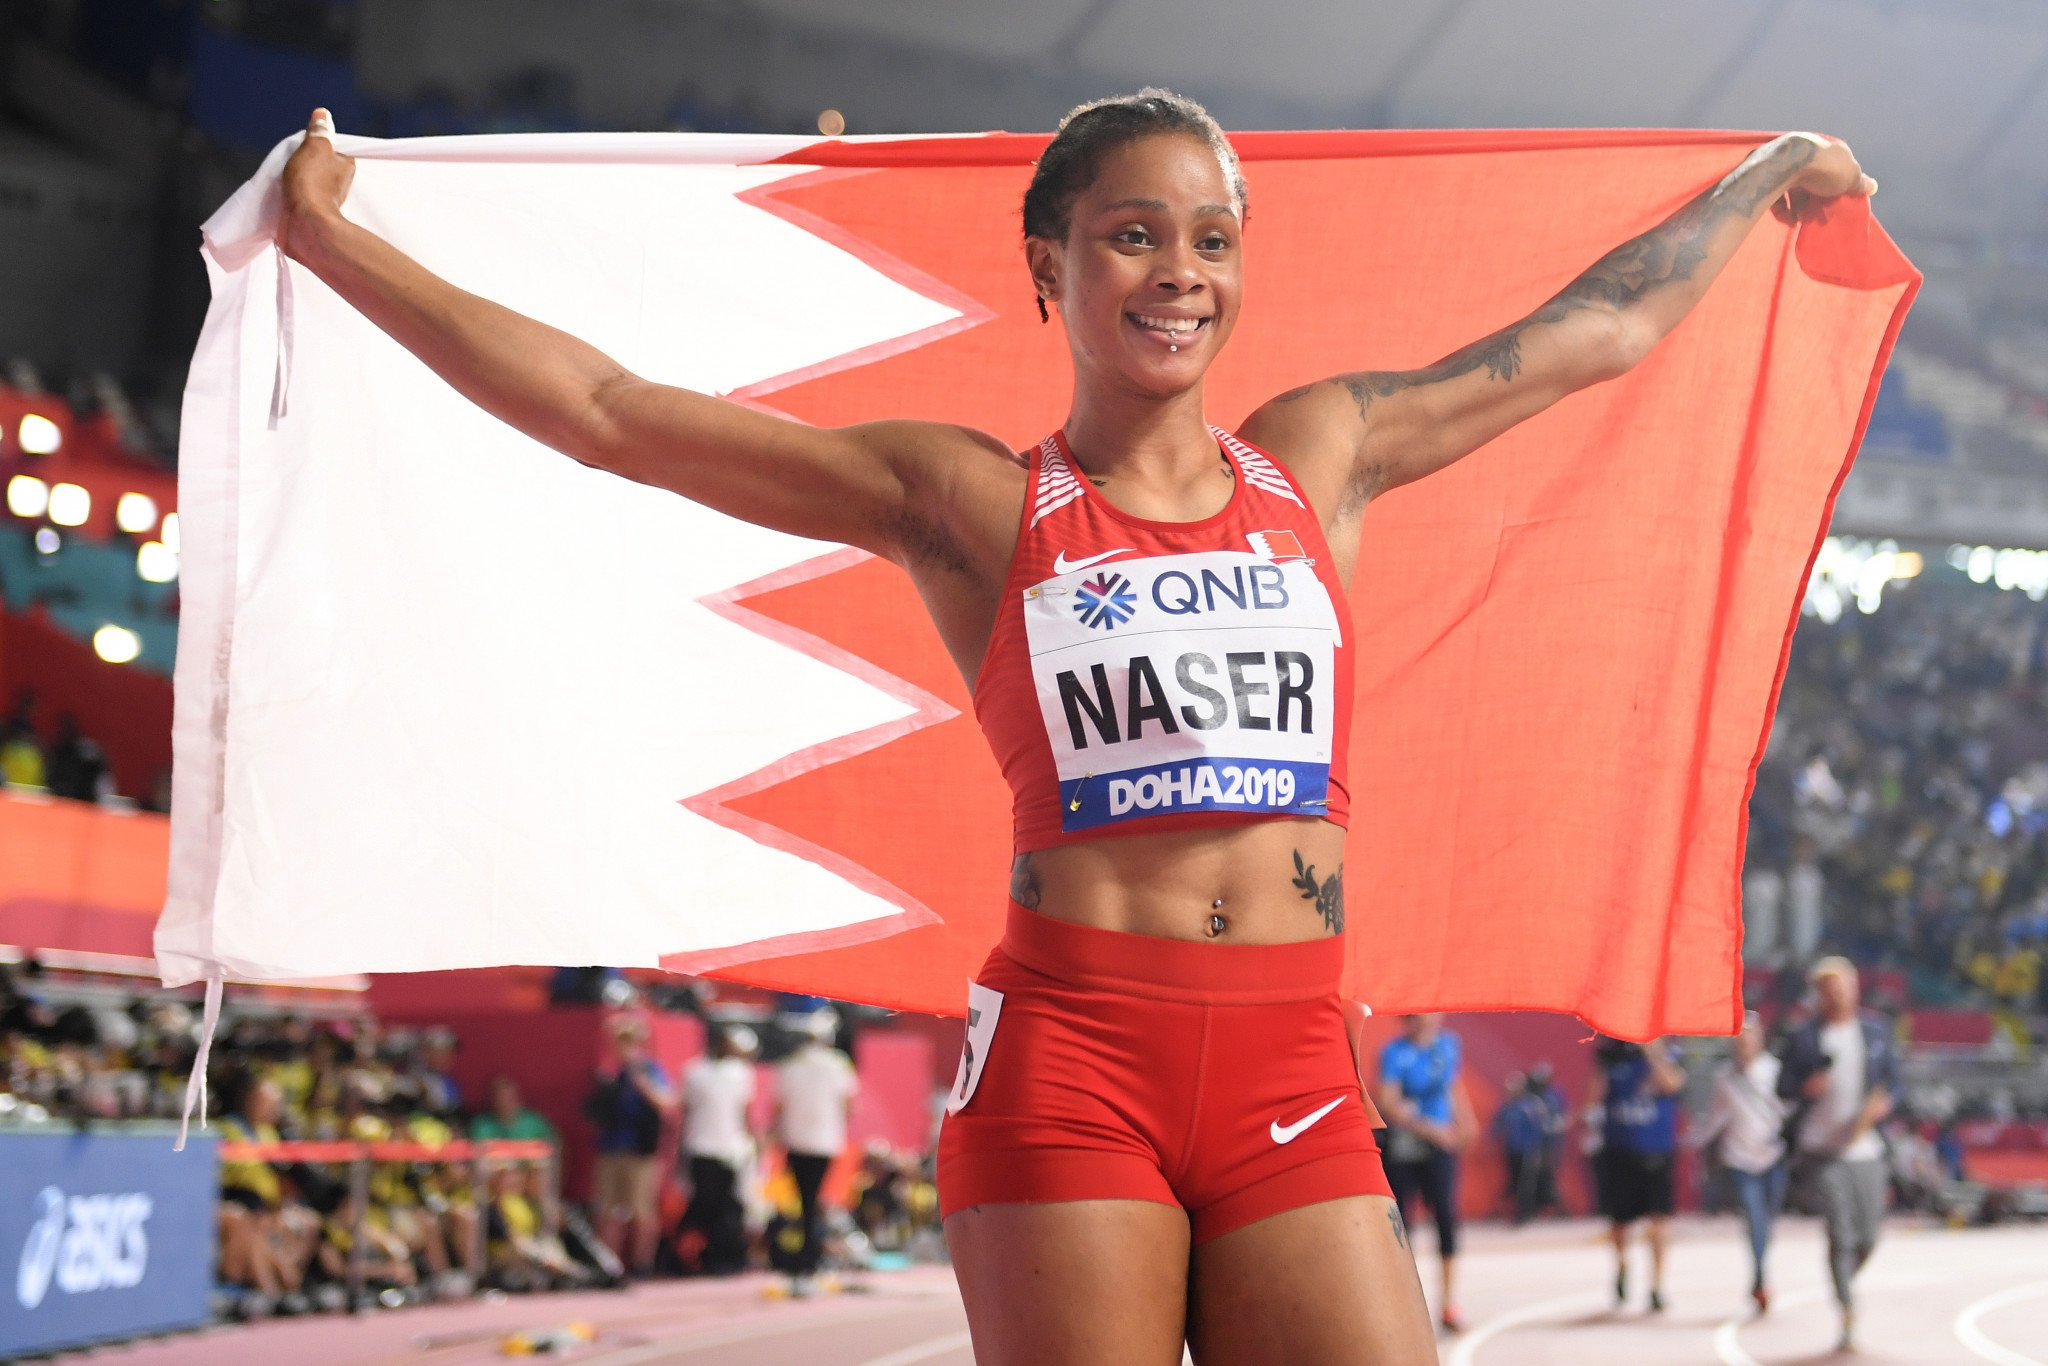 """I've never been a cheat"" says Naser in video following provisional ban for whereabouts failures"